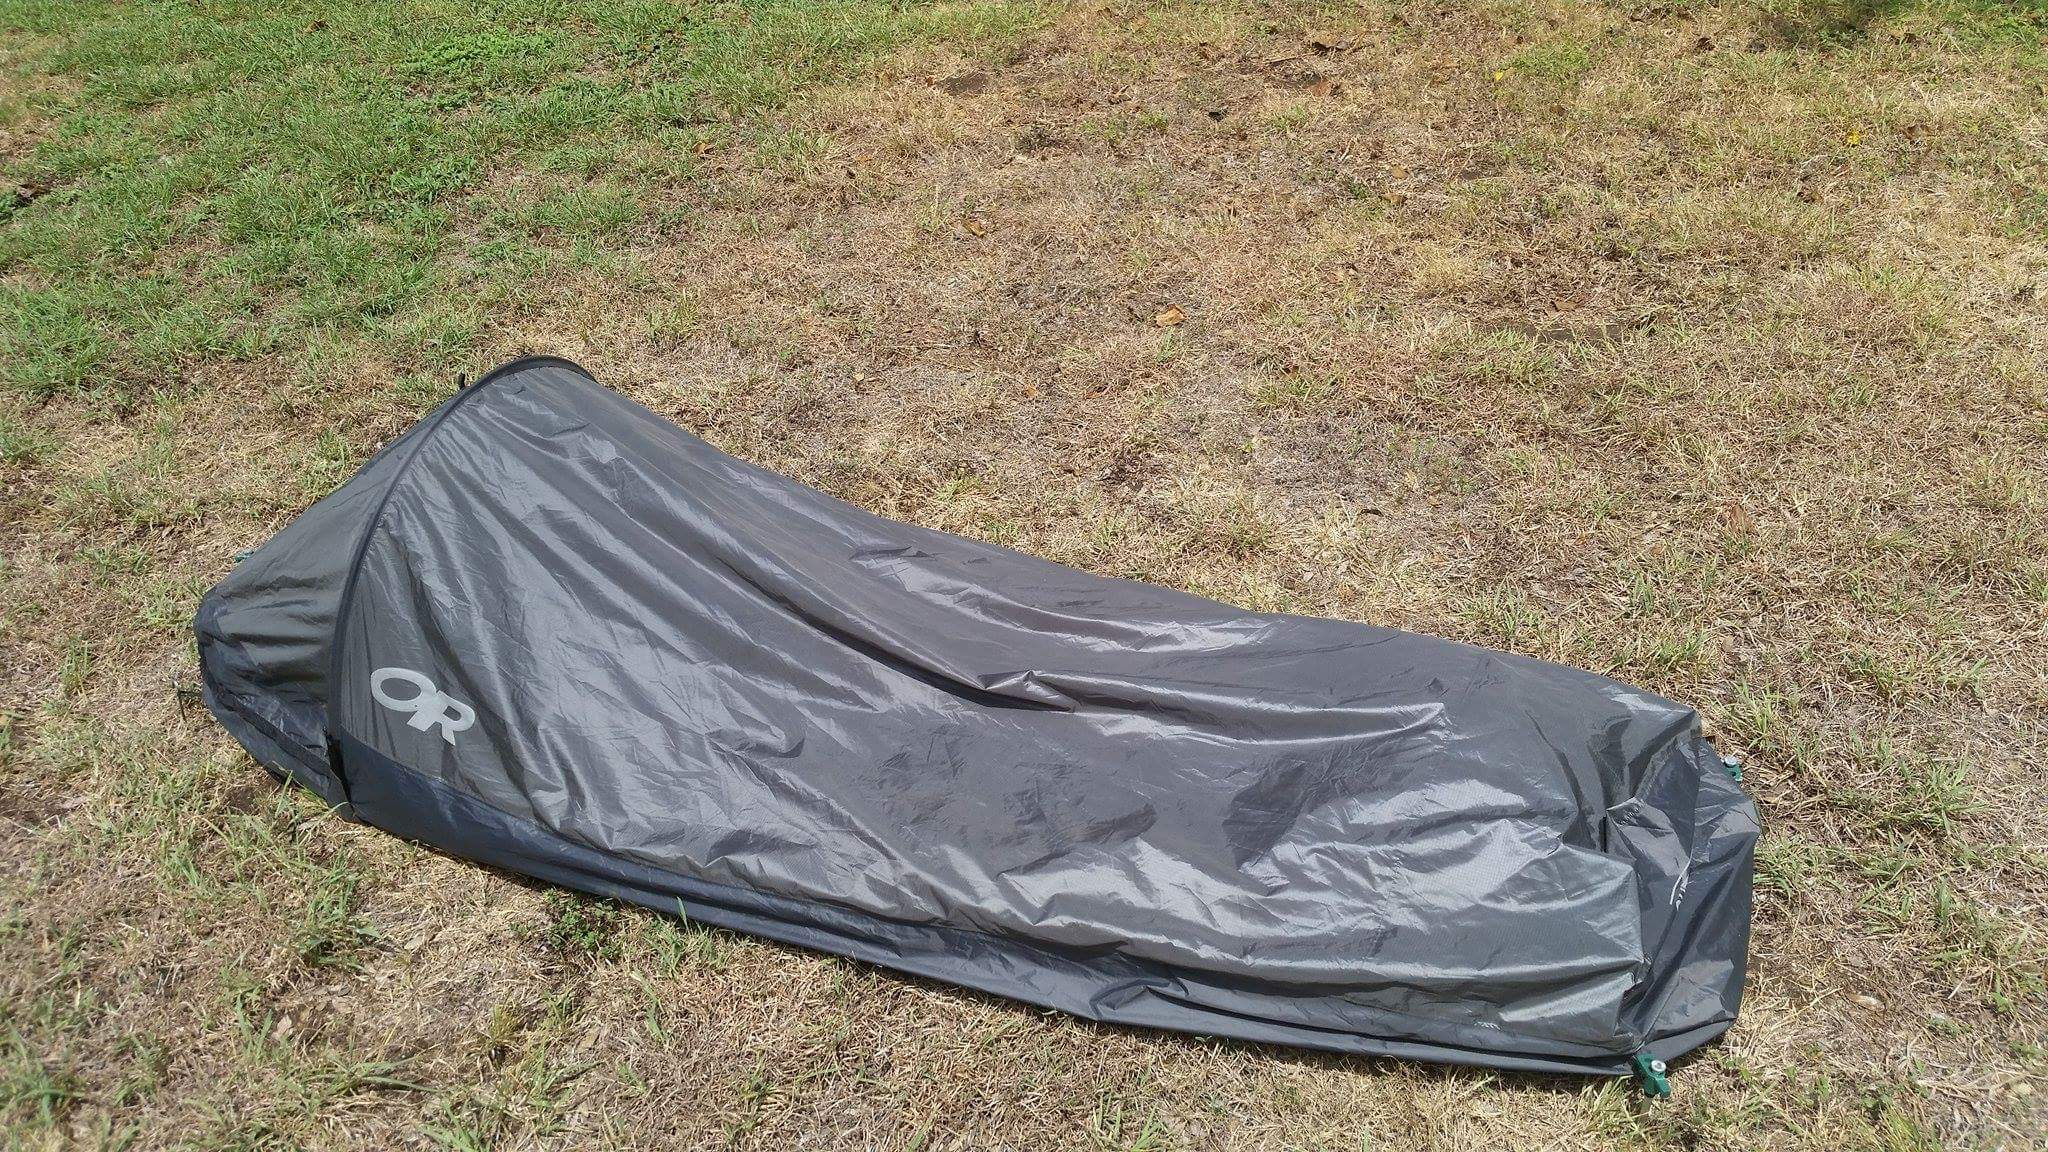 ... with other people so I bought a 2 person tent and need to sell the bivy. It is in very good condition. Iu0027m asking for $140 shipped Paypal Fu0026F or add 3%. & FS: Outdoor Research Helium Bivy - Backpacking Light